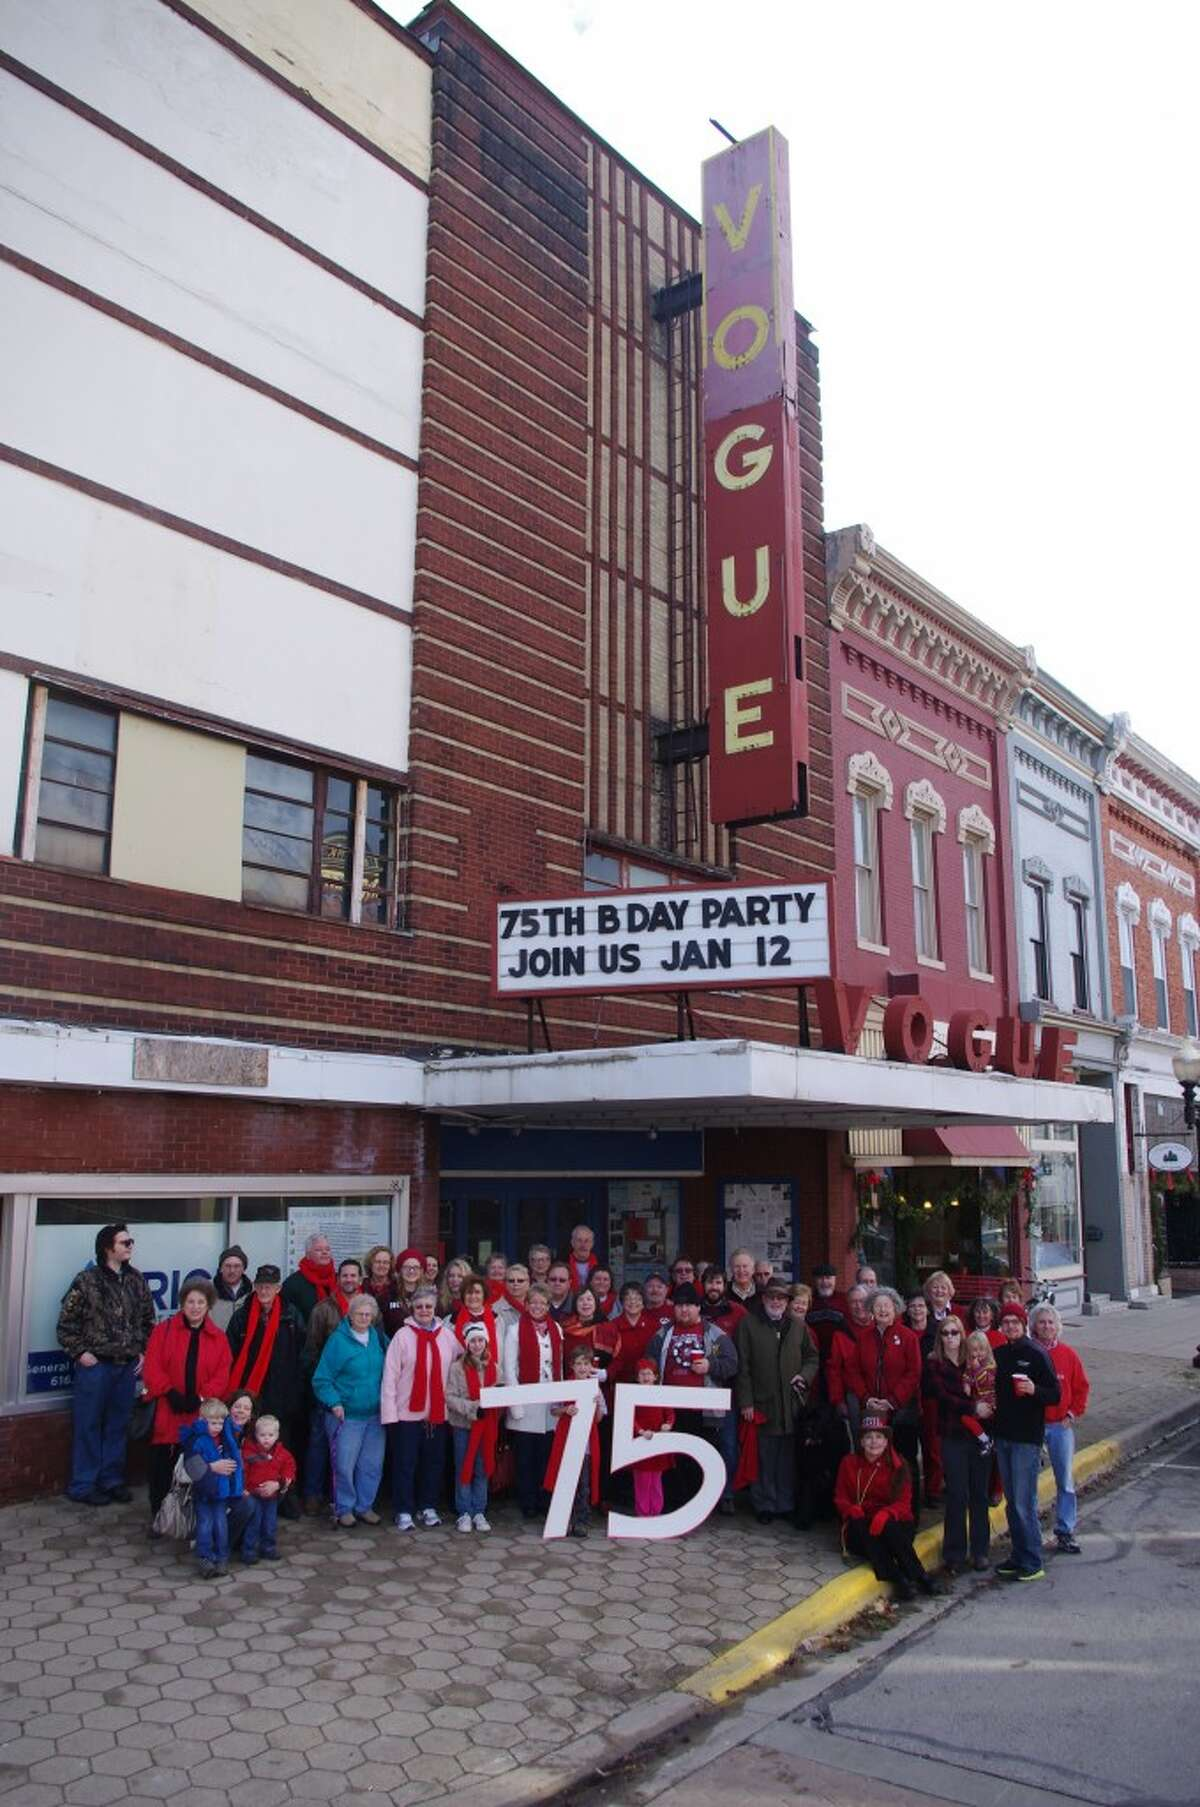 A crowd of people celebrating the Vogue Theatre's 75th birthday gather to have their photo taken Saturday in front of the theater. (Dave Yarnell/News Advocate)